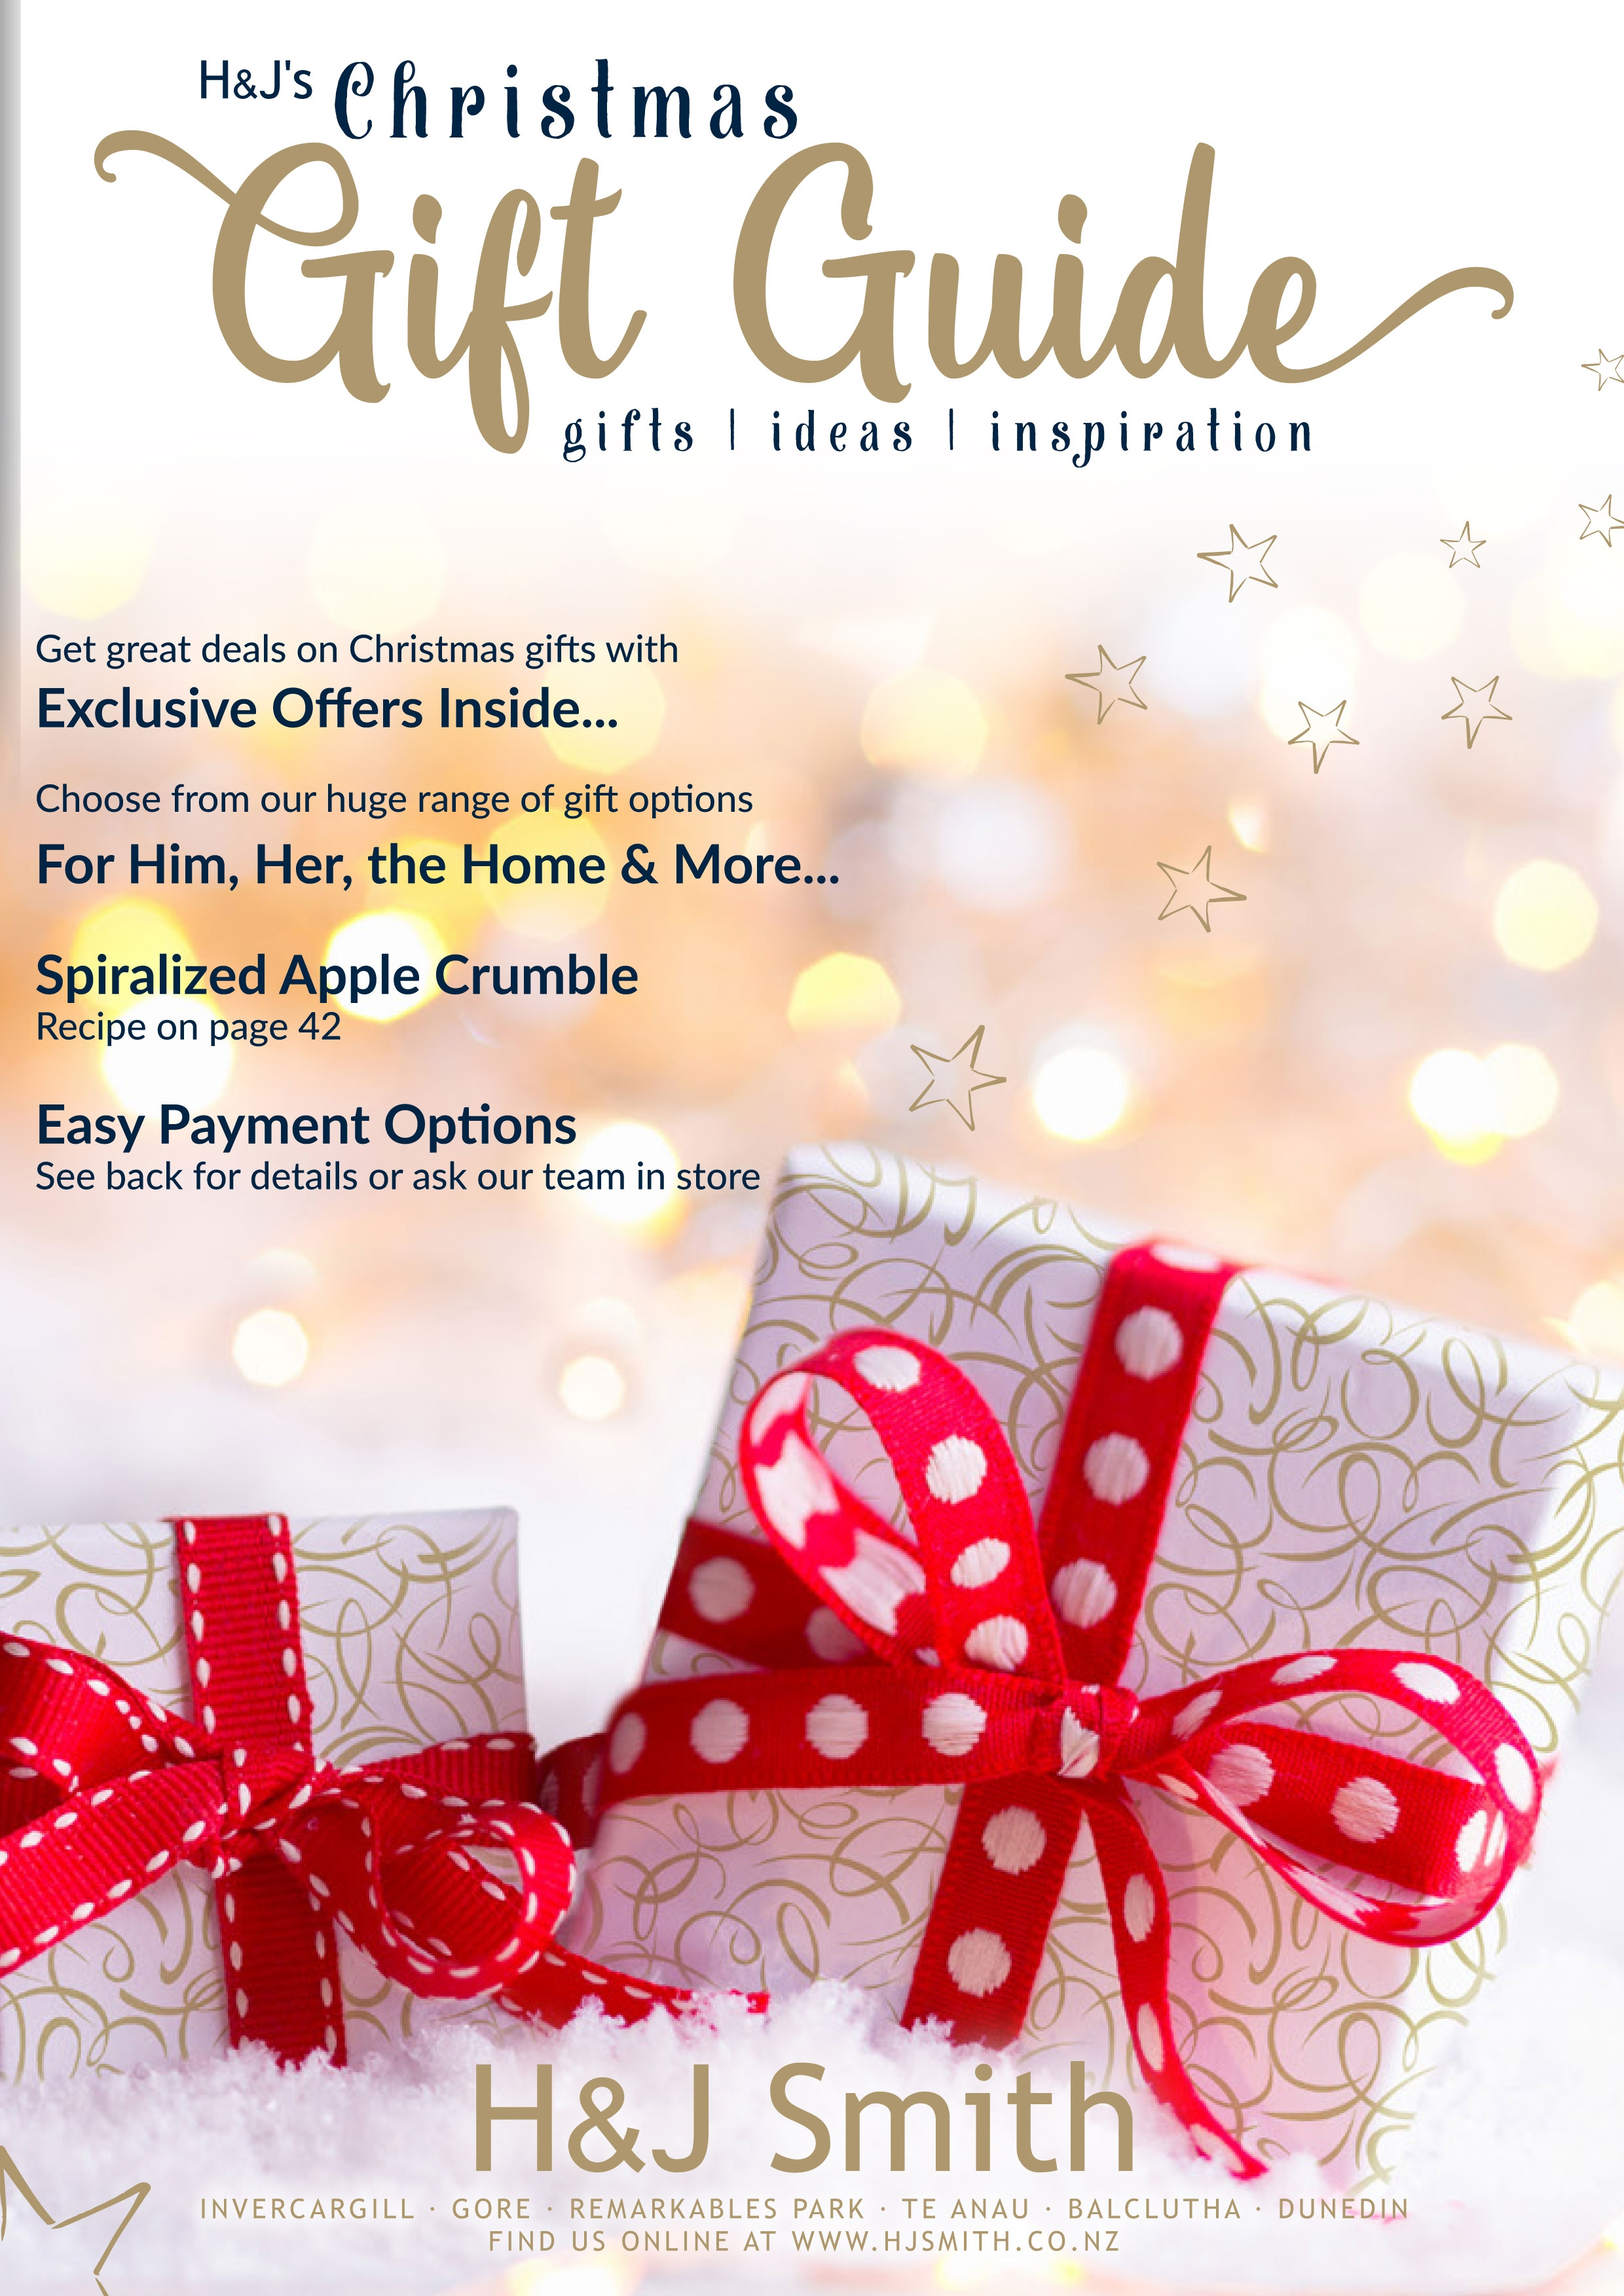 Christmas Gift Catalogs Online - Christmas Gifts For Dad